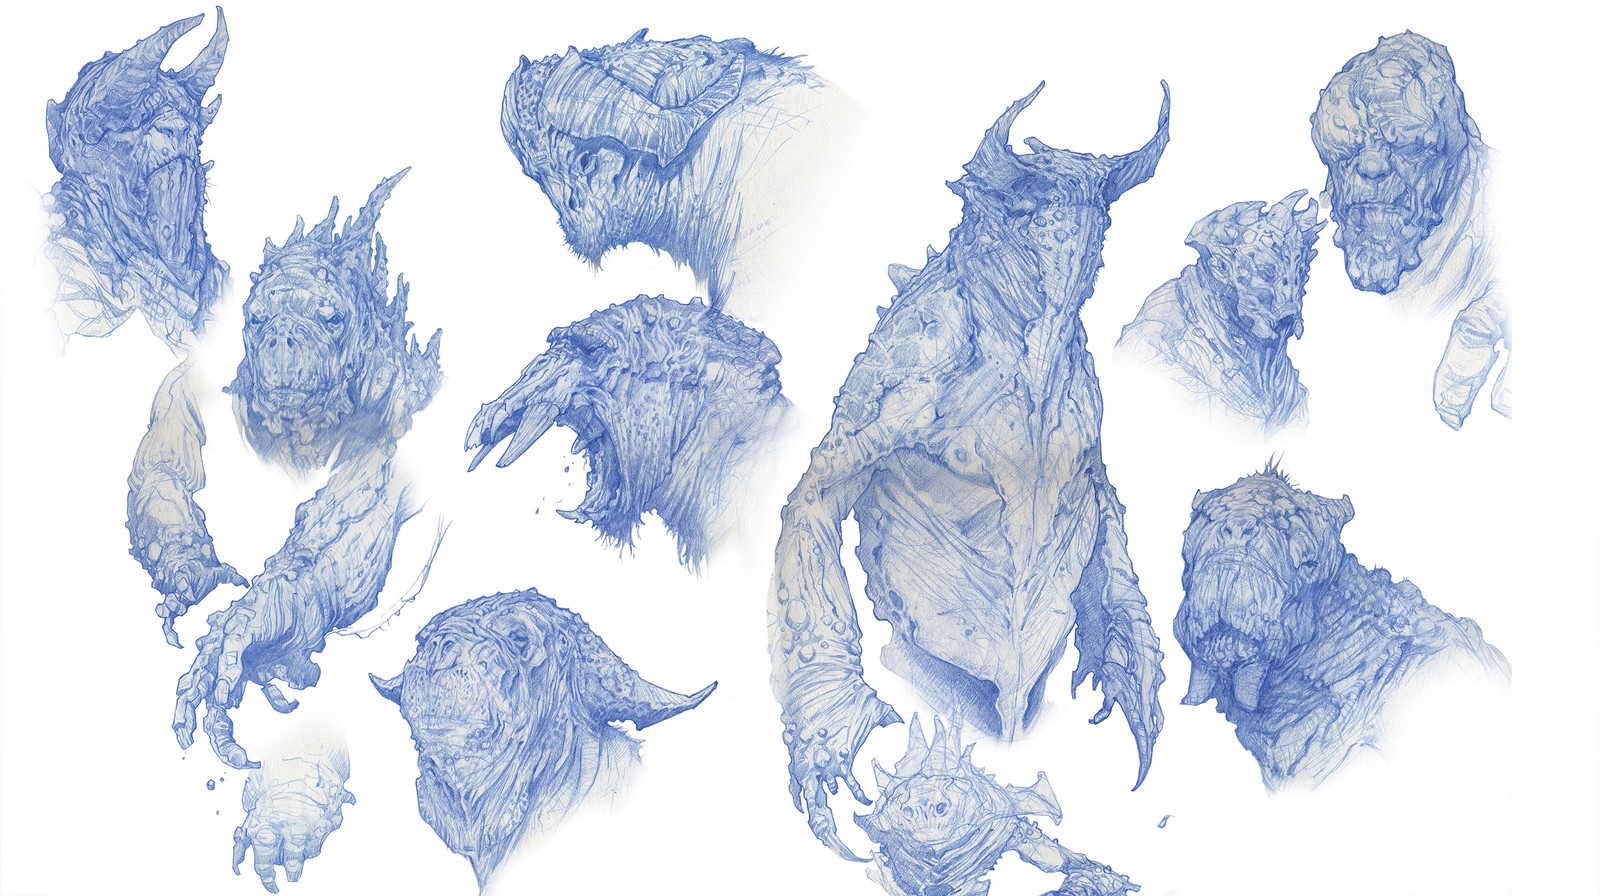 Early Troll sketches